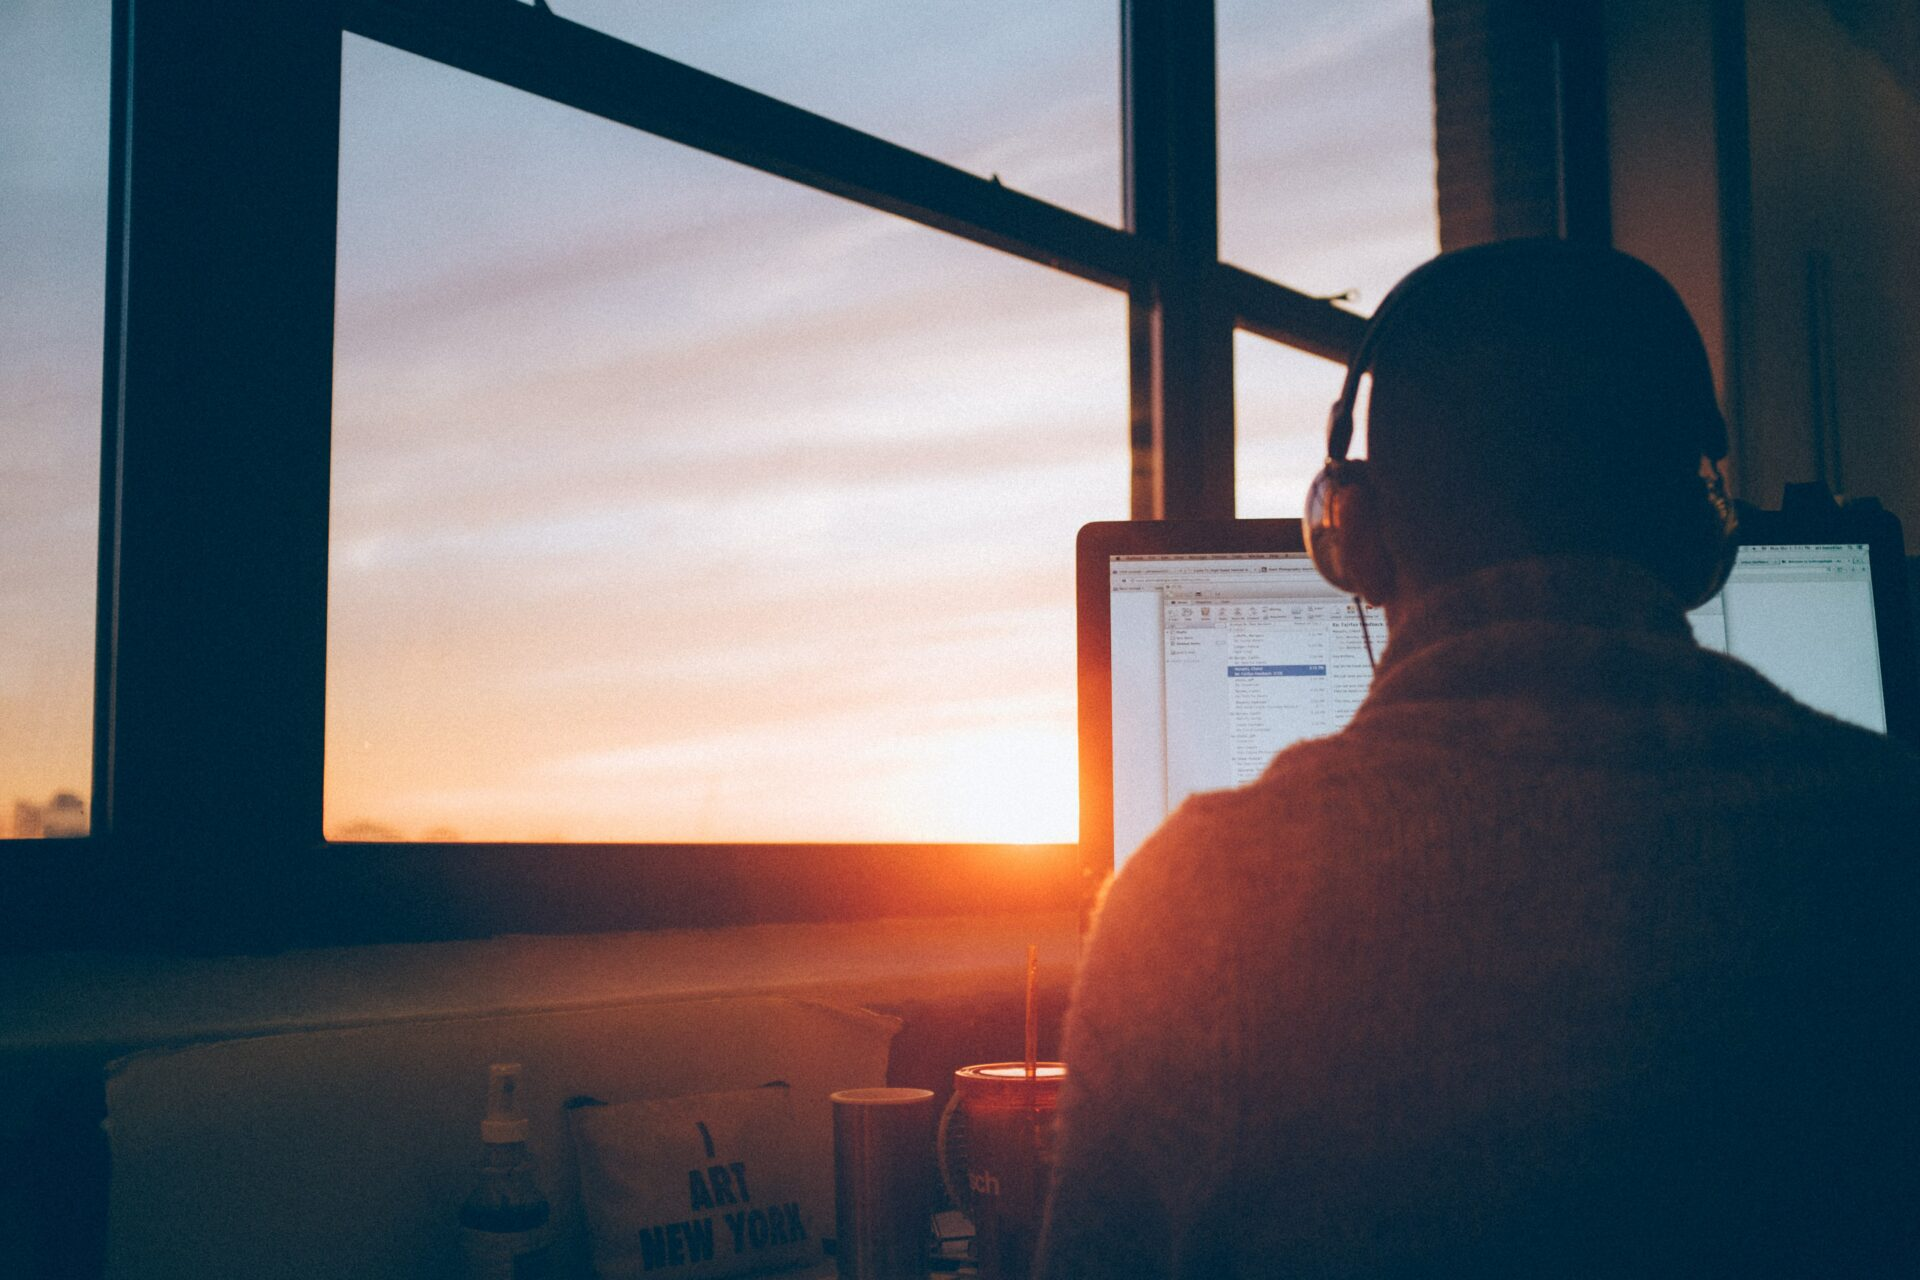 A remote worker looking at a sunset out the window